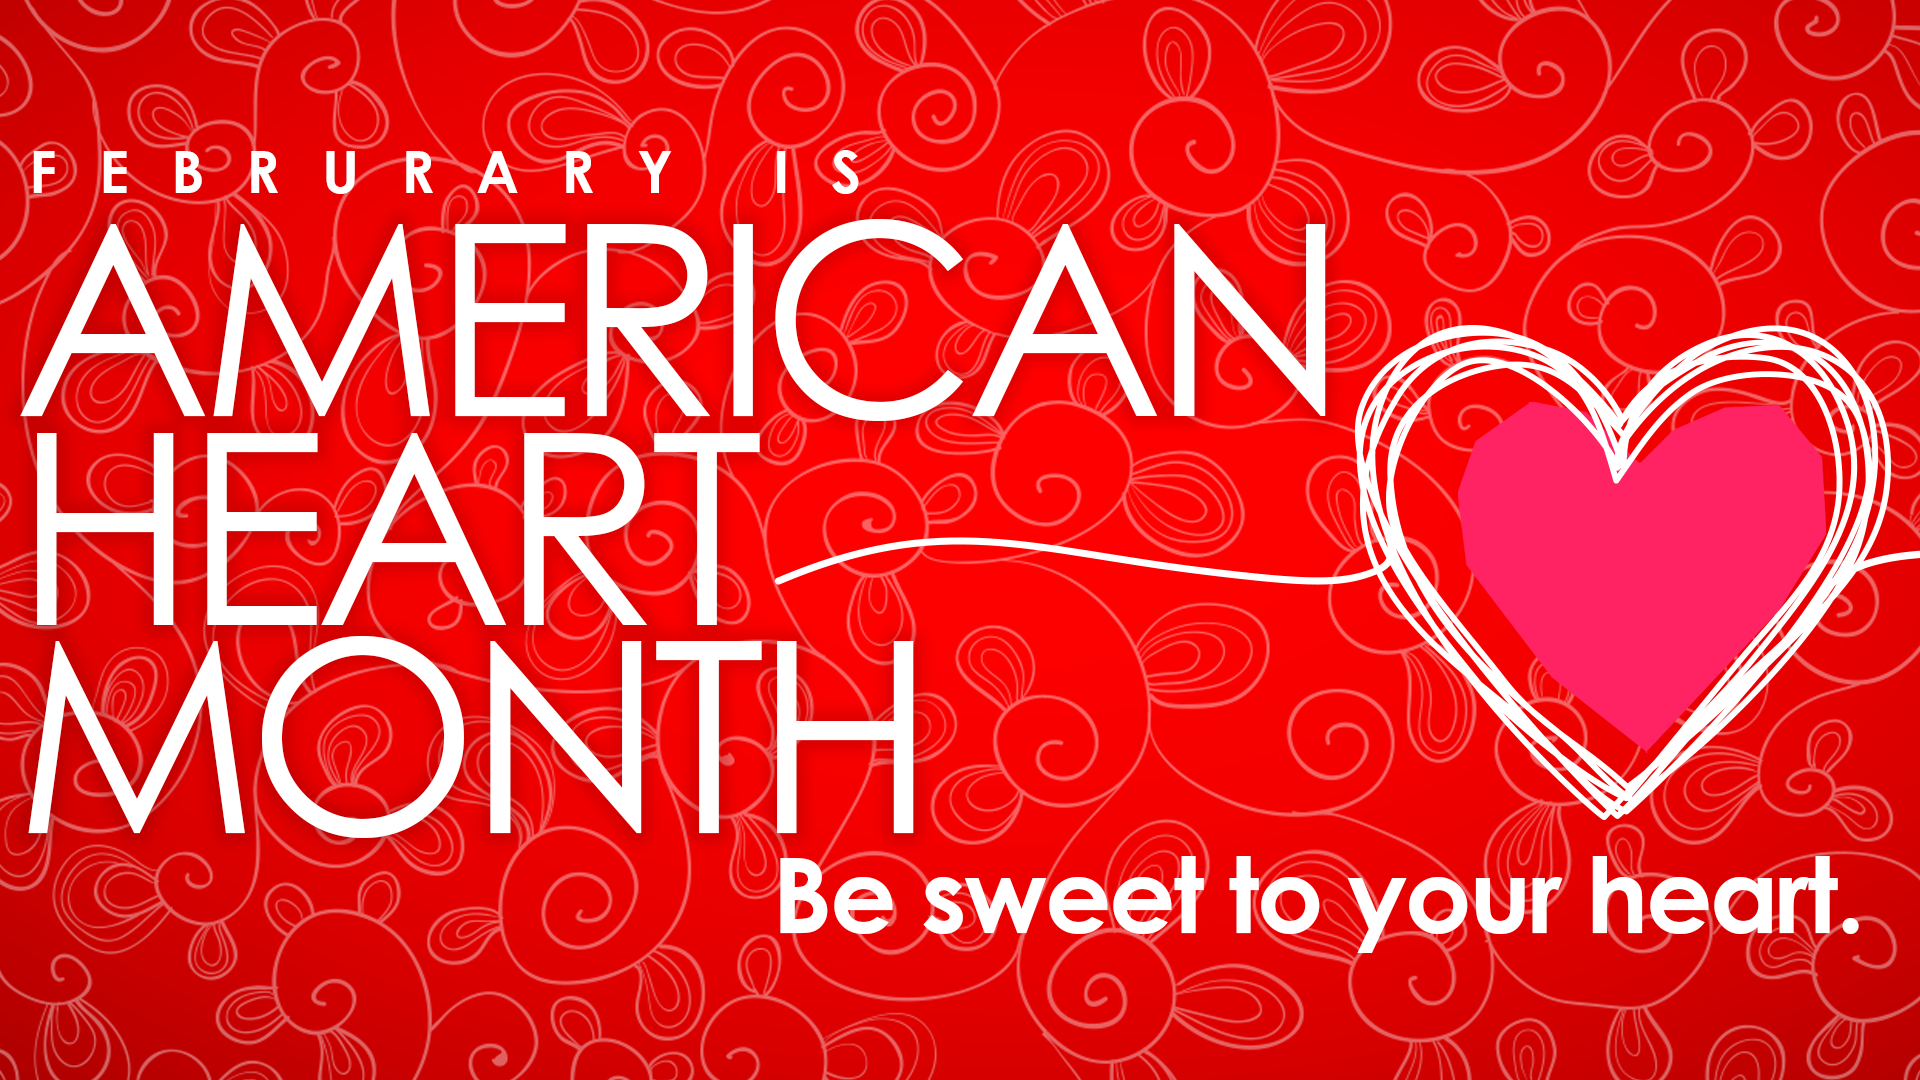 Photo: drawing of heart Text: February is American Heart Month. Be sweet to your heart.